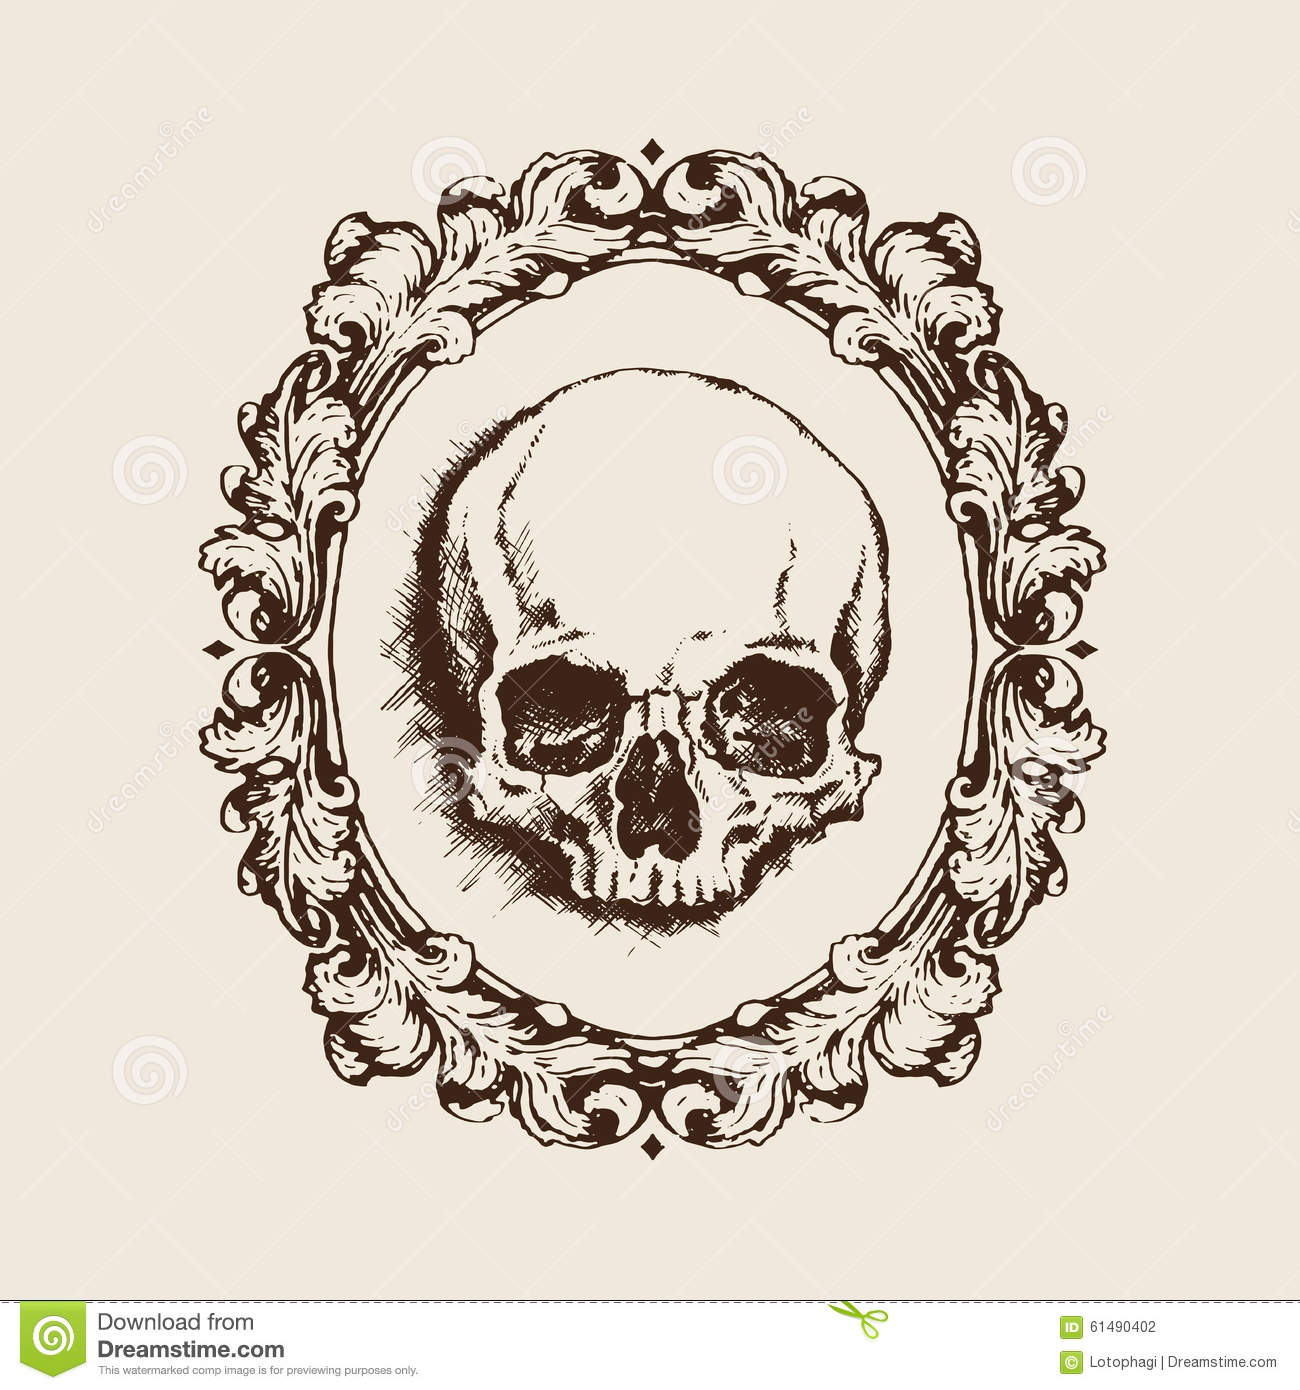 Human Skull In Filigree Frame. Vector Illustration Stock Vector ...